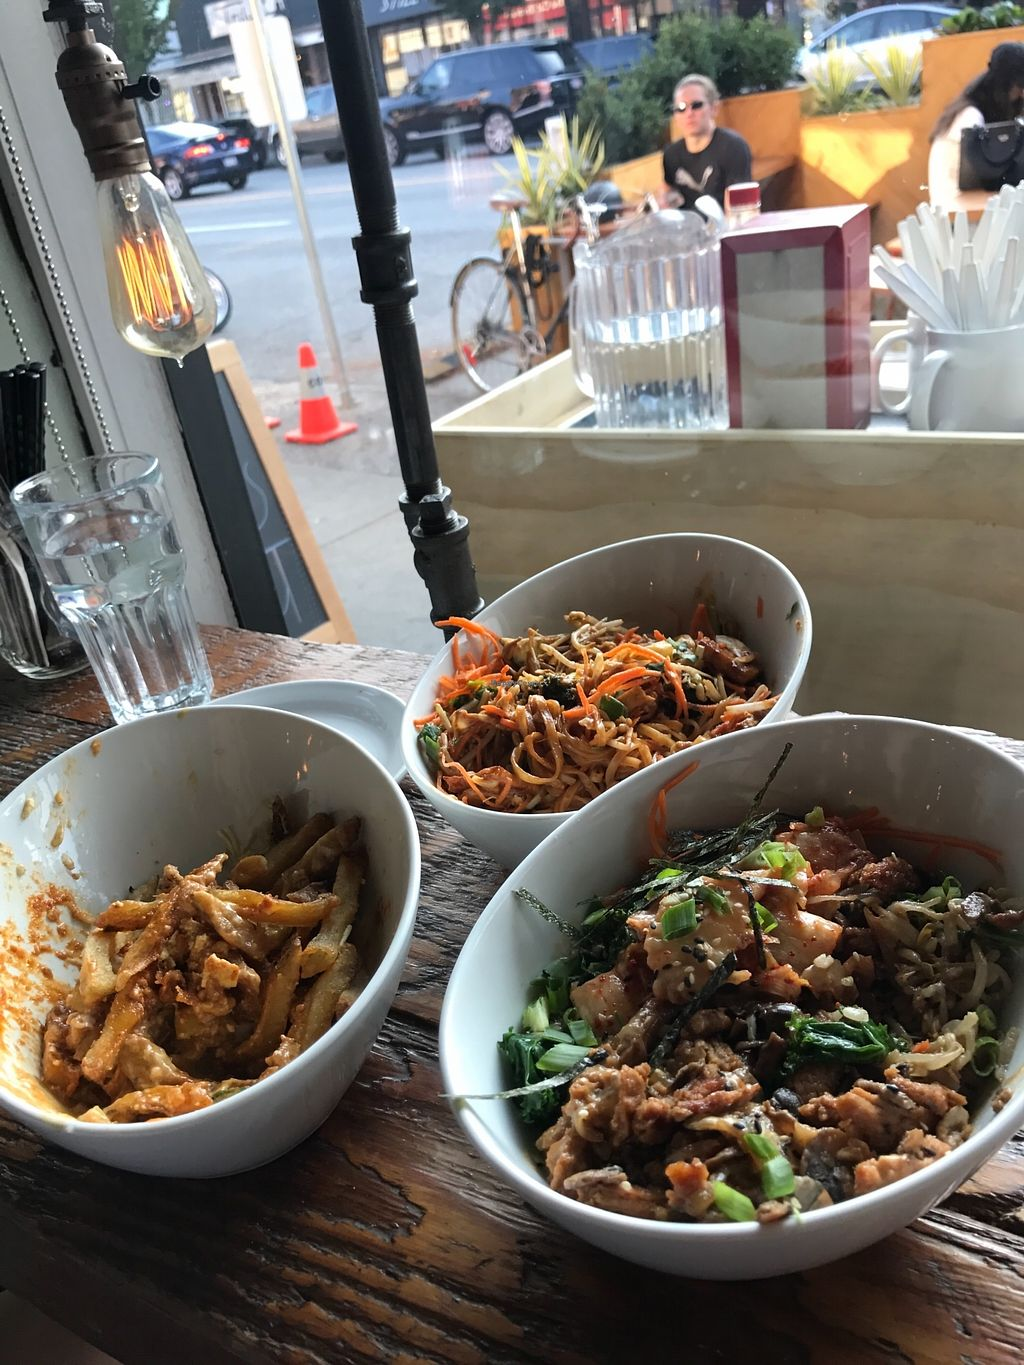 """Photo of MeeT on Main  by <a href=""""/members/profile/imsamanthalee"""">imsamanthalee</a> <br/>From left to right Butter Chickinw Poutine Pad Thai Seoul Bowl <br/> August 31, 2017  - <a href='/contact/abuse/image/51030/299383'>Report</a>"""